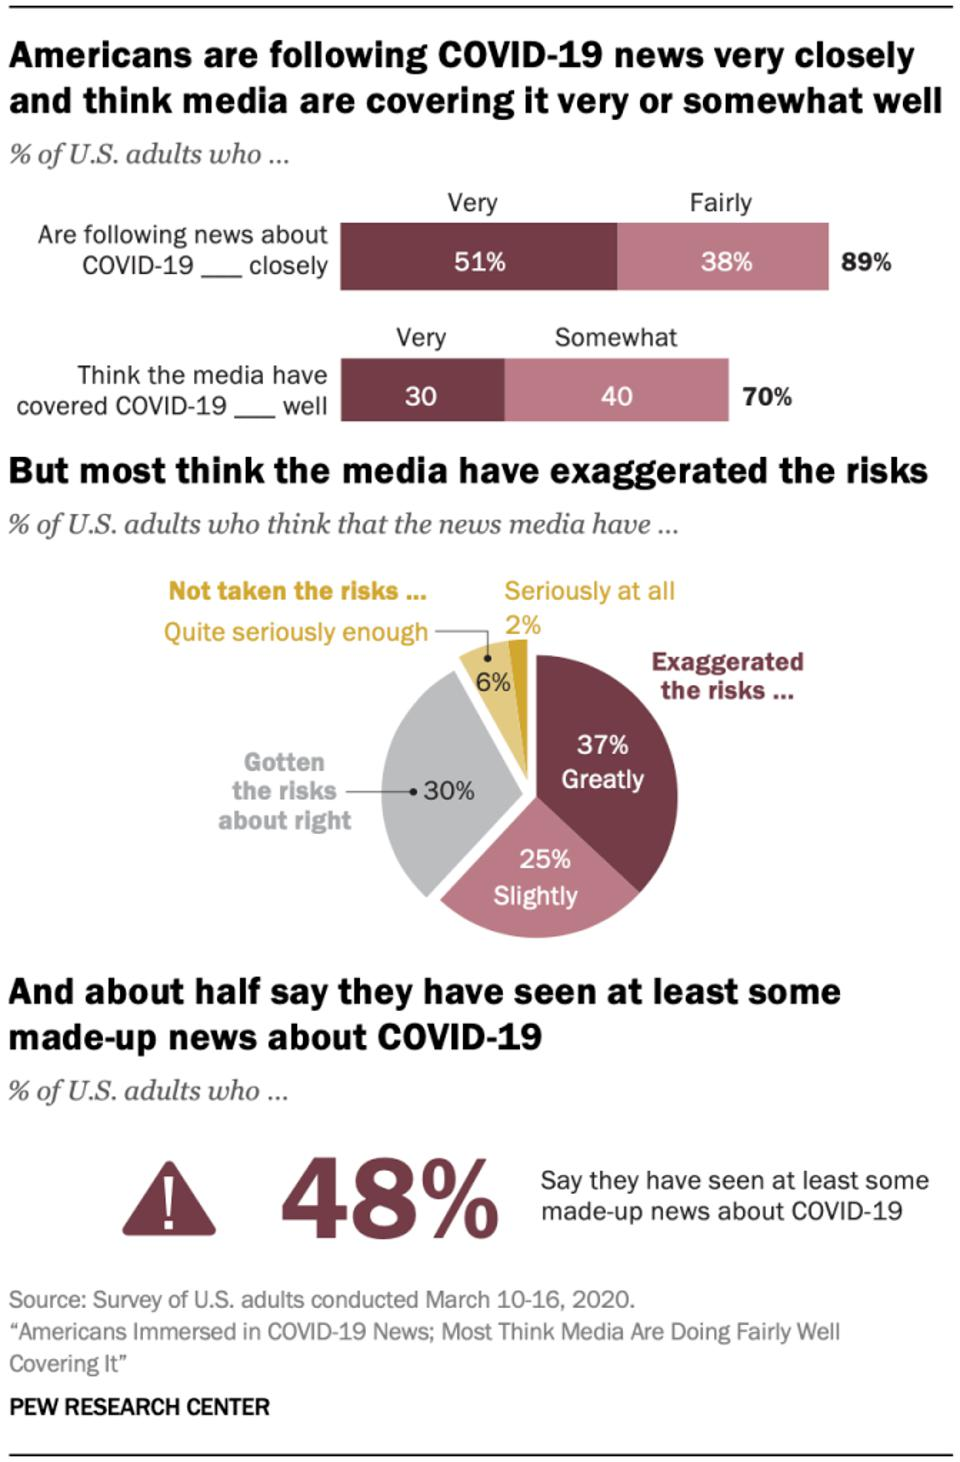 Data on coronavirus and media coverage from Pew Research Center